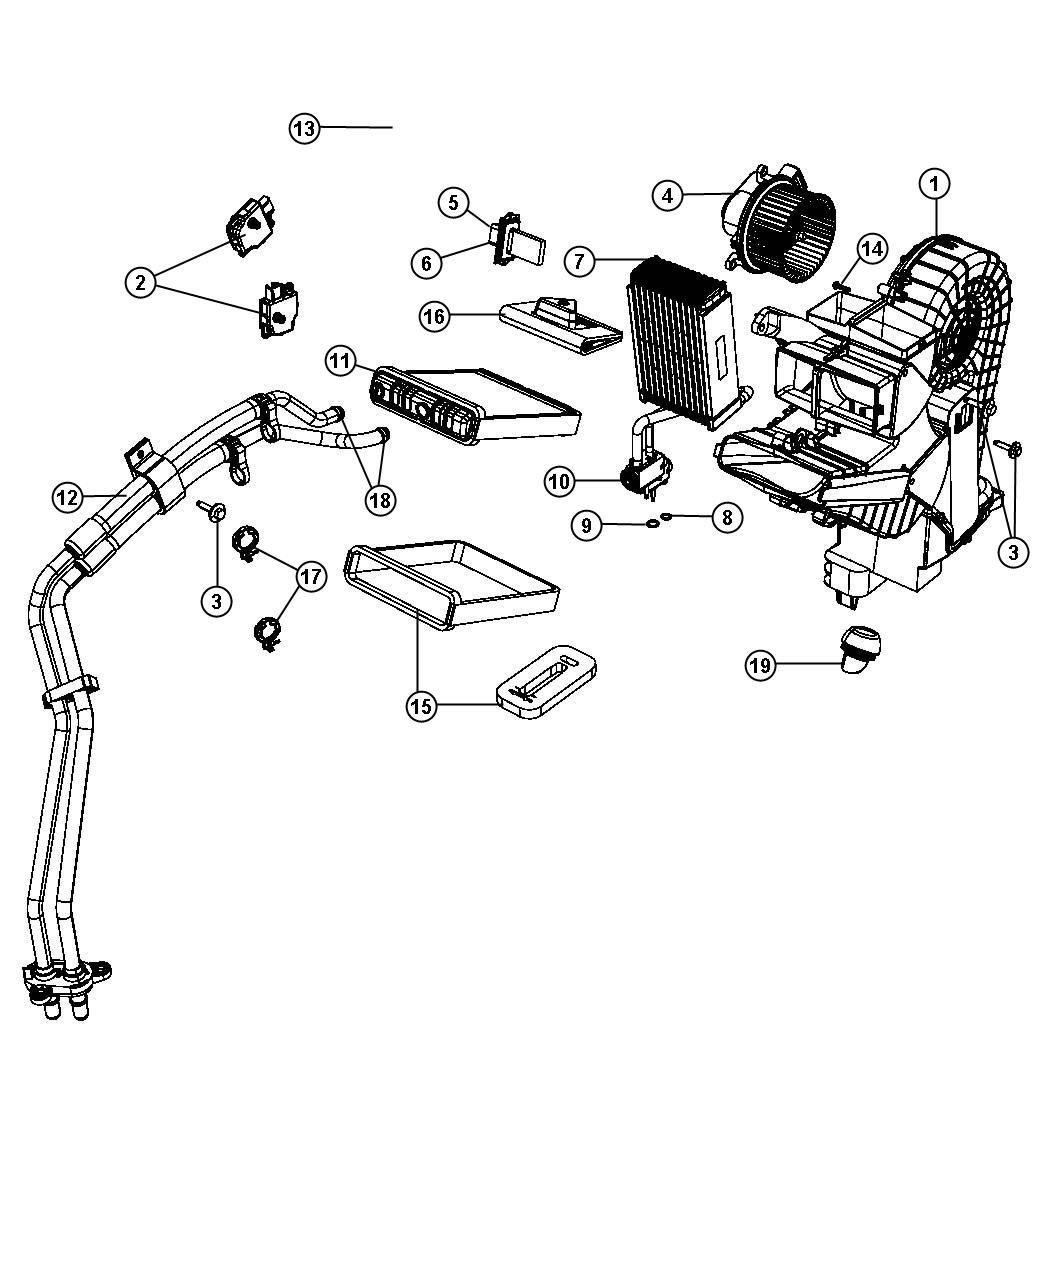 2013 Chrysler Town & Country Rear AC ACTUATOR MOTOR